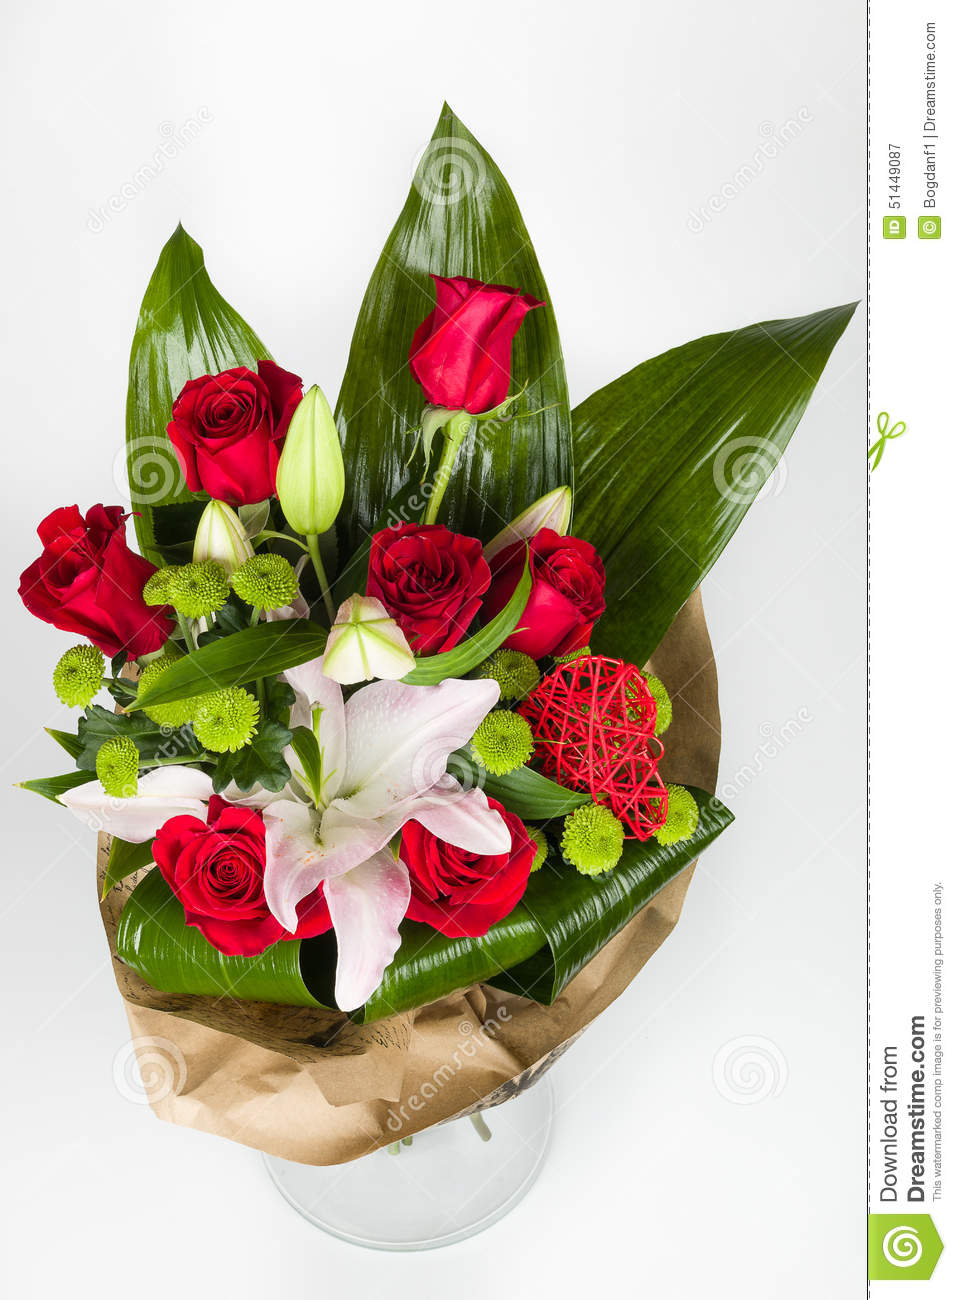 Flower Bouquet And Lily Arrangement Top View Stock Image Image Of